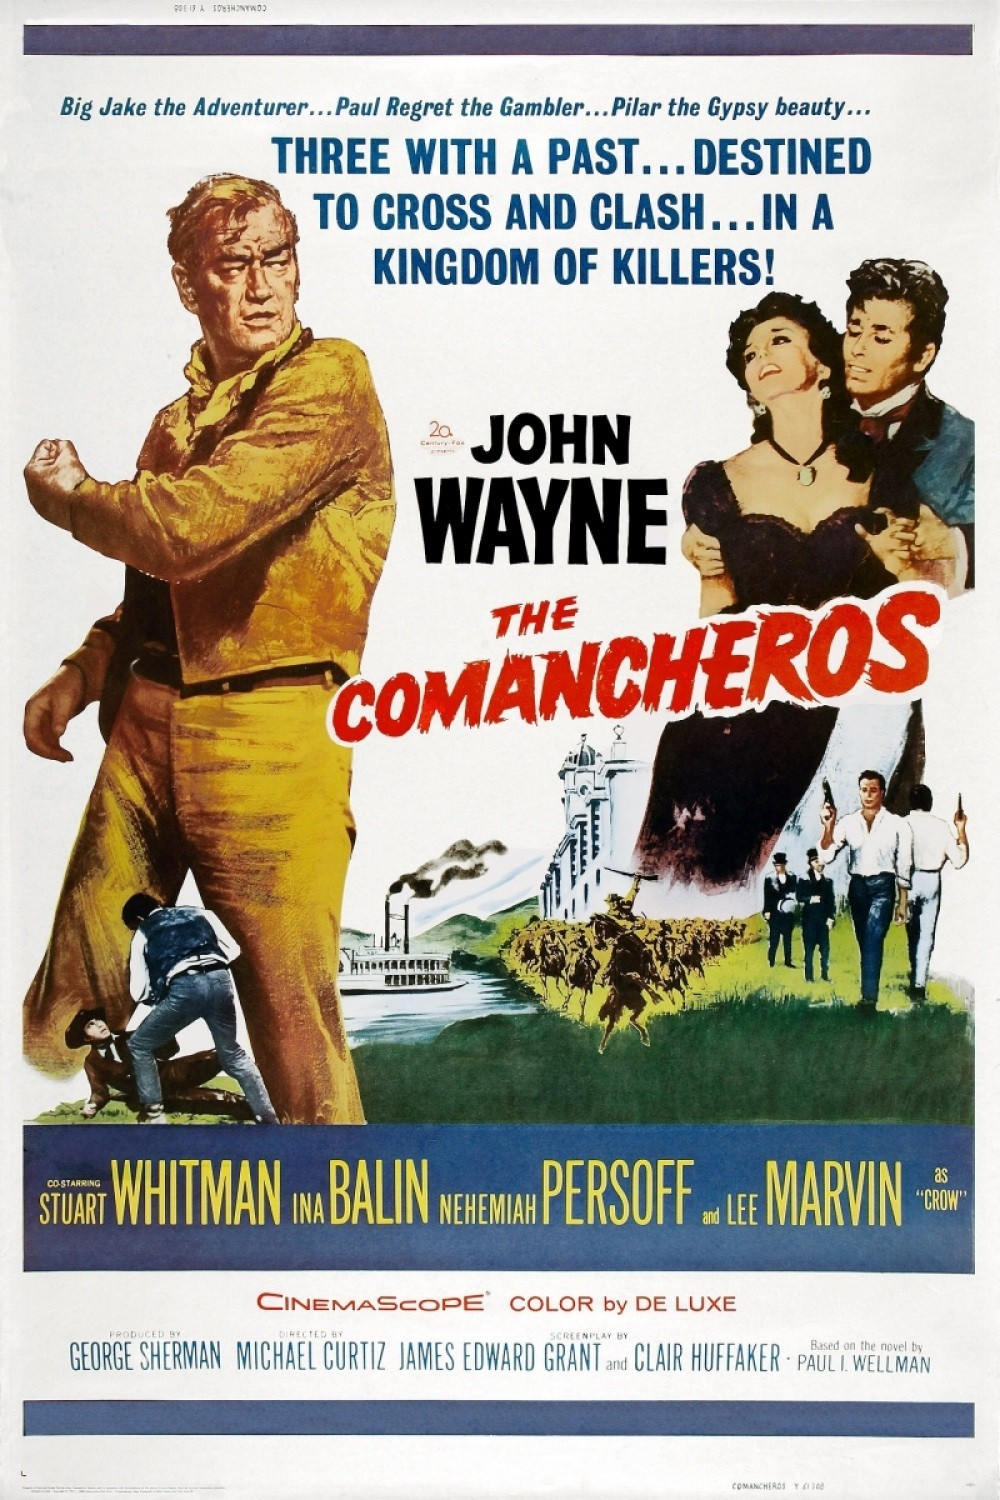 The Comancheros: A bit silly at times but still really enjoyable to watch